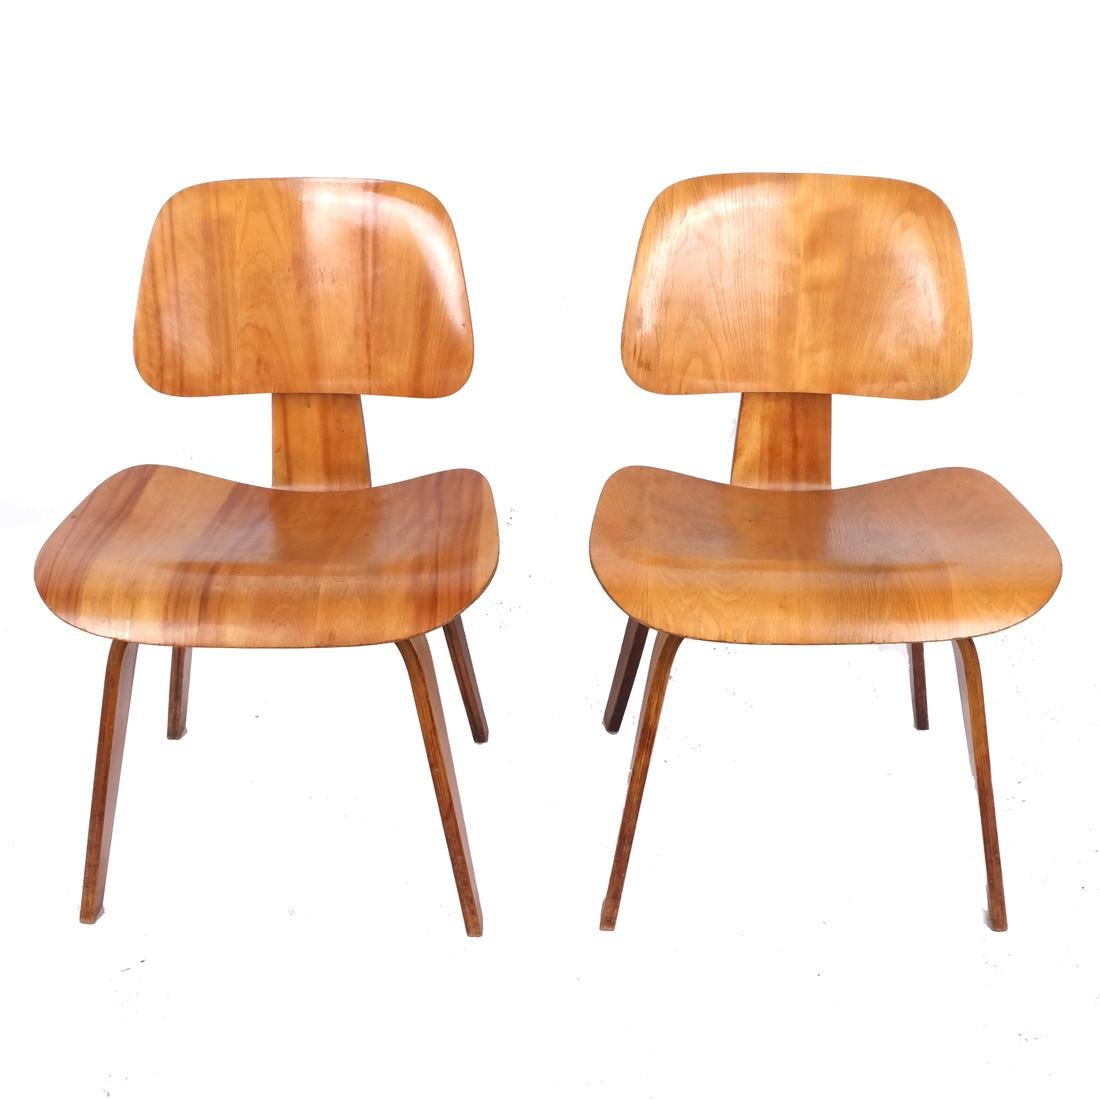 Charles Eames for Herman Miller DCW Chairs